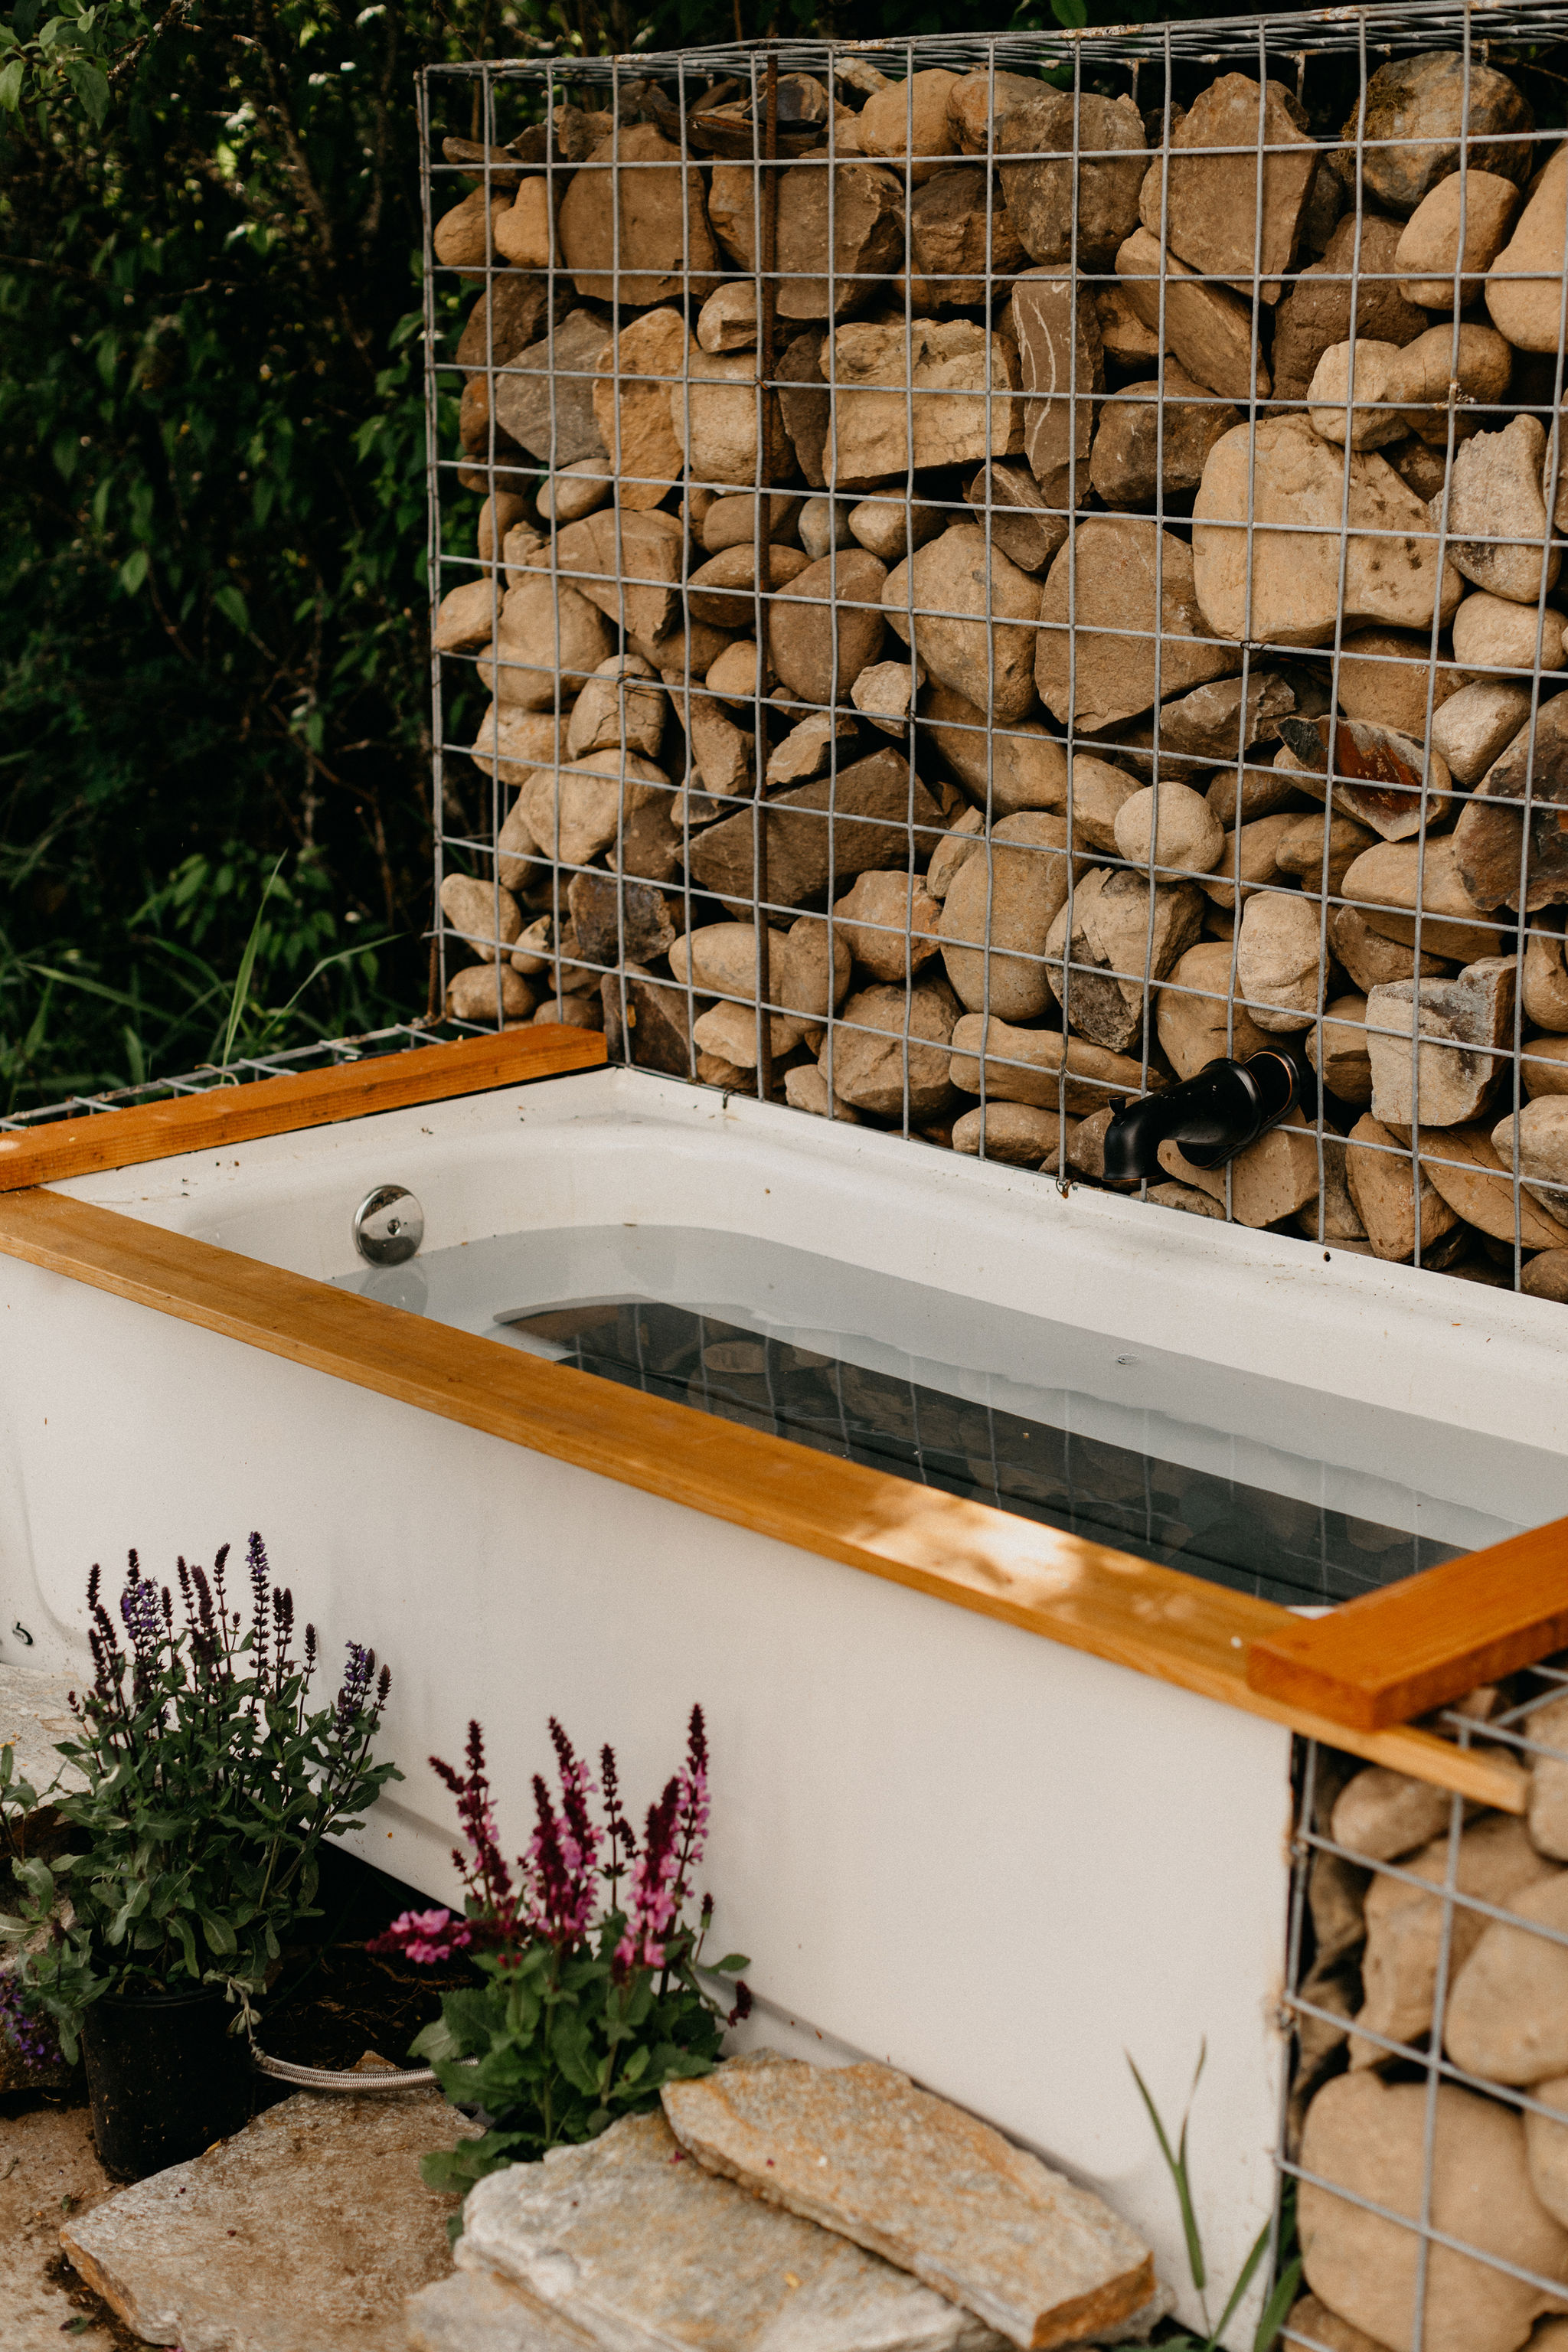 Outdoor heated bathtub to soak and relax after a long hike.